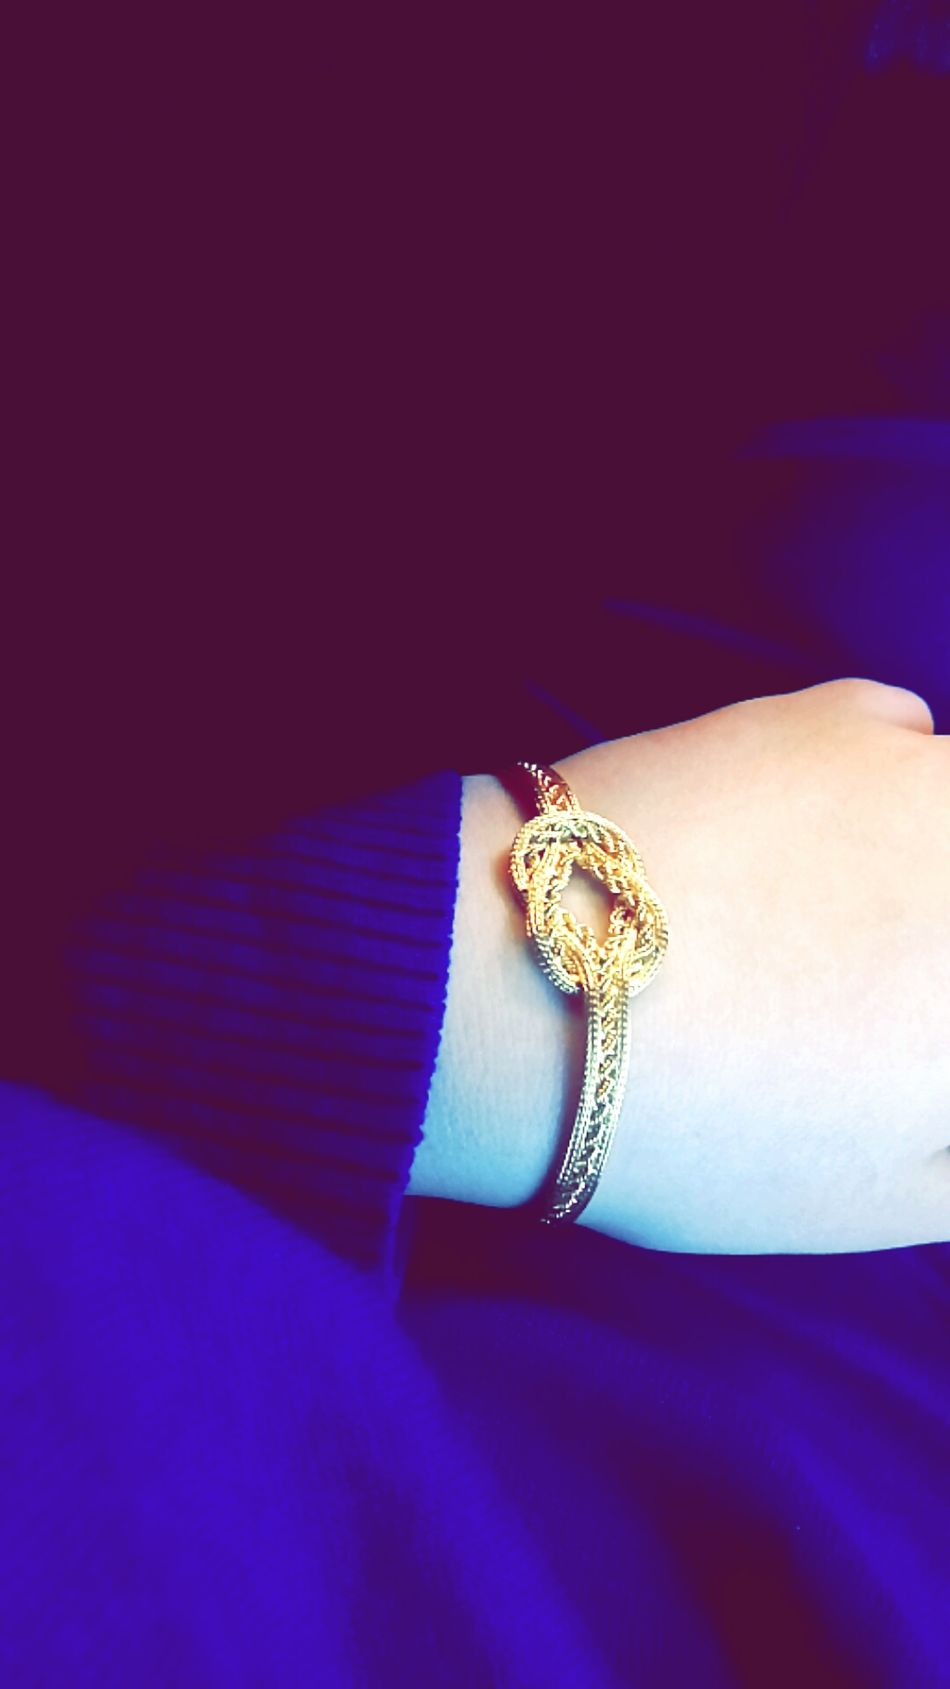 Millionnaire Adults Only Ring Luxury Adult Wealth People One Person Close-up Red Carpet Event Premiere Day Gold Altin Turkey Hello World Travel Turkishairlines Snow ❄ Cold Winter ❄⛄ Golden Wristband Wristbands Istanbul Boğaz Köprüsü